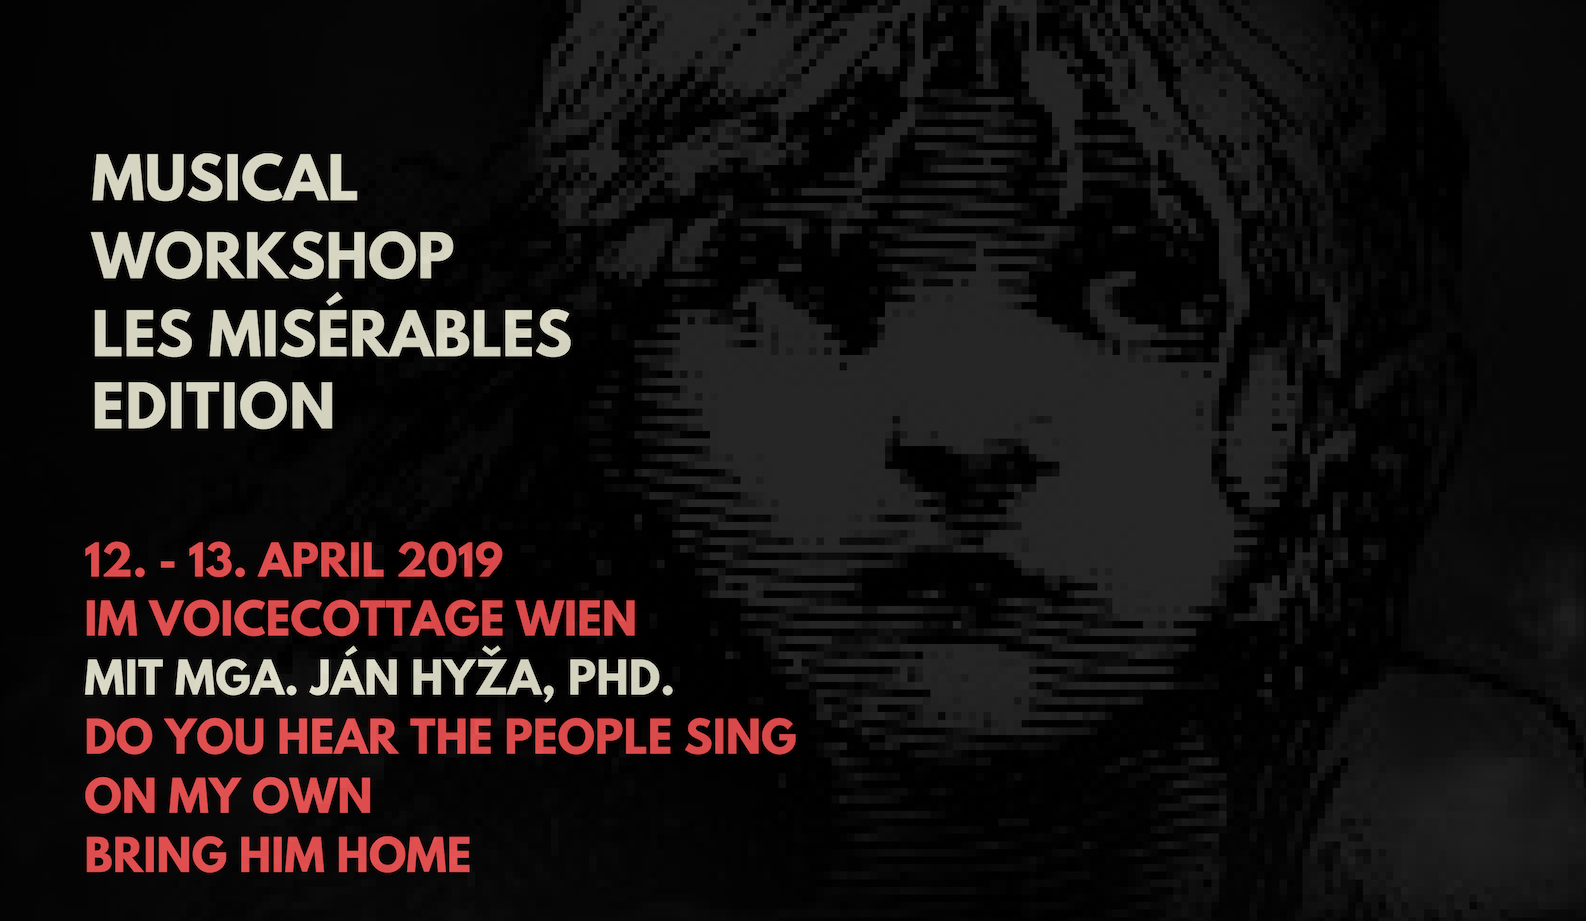 MUSICAL WORKSHOP – LES MISÉRABLES EDITION @ VoiceCottage - KreativManufaktur | Wien | Wien | Österreich